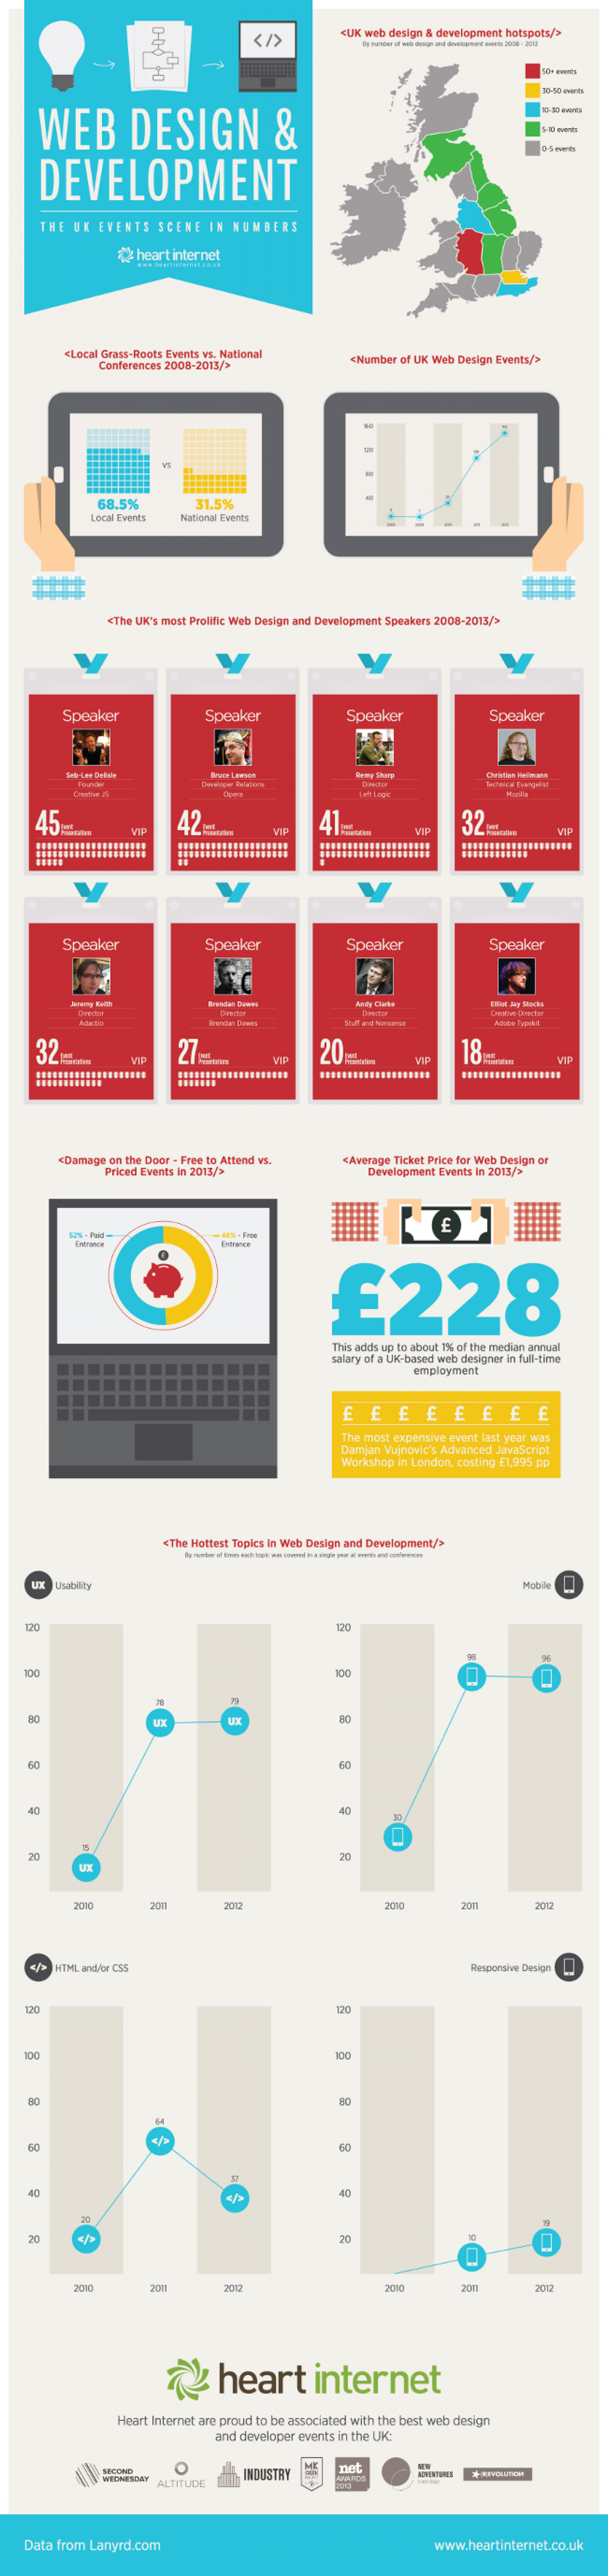 The UK web design and development events scene Infographic